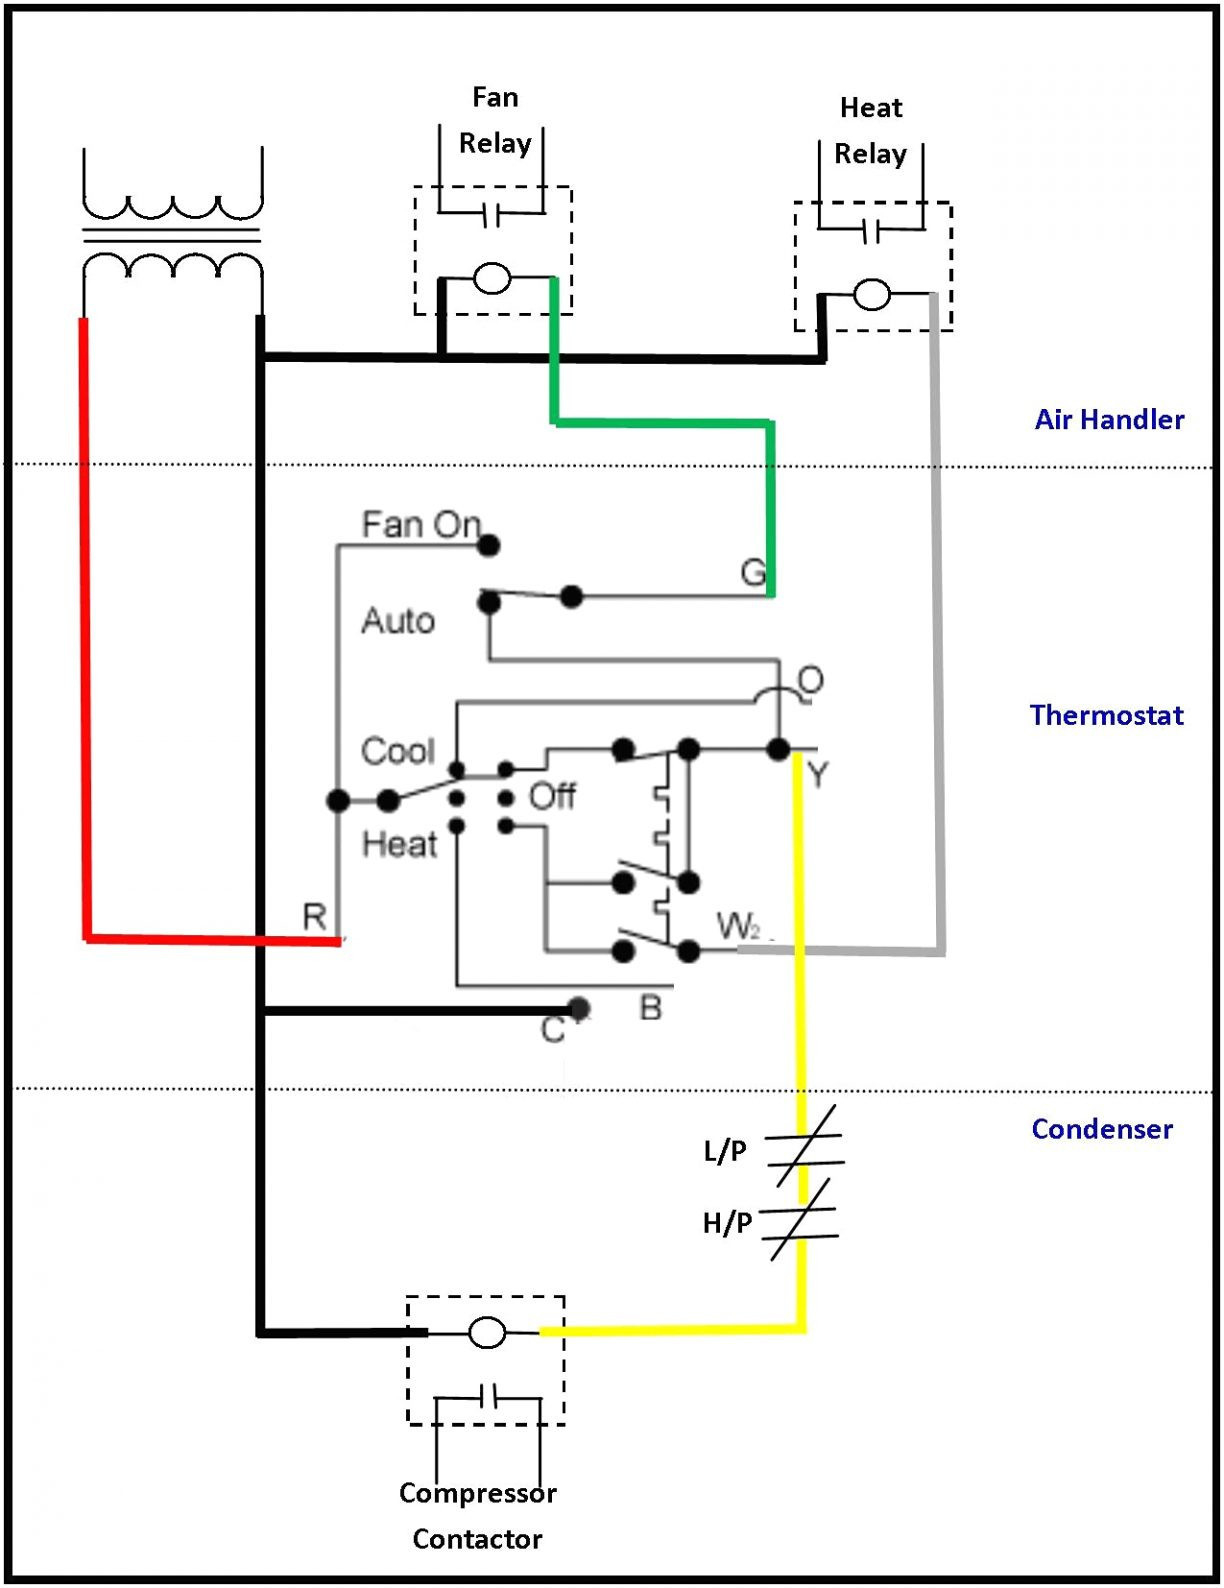 hight resolution of contactor wiring diagram ac unit download wiring diagram for ac unit thermostat valid wiring a